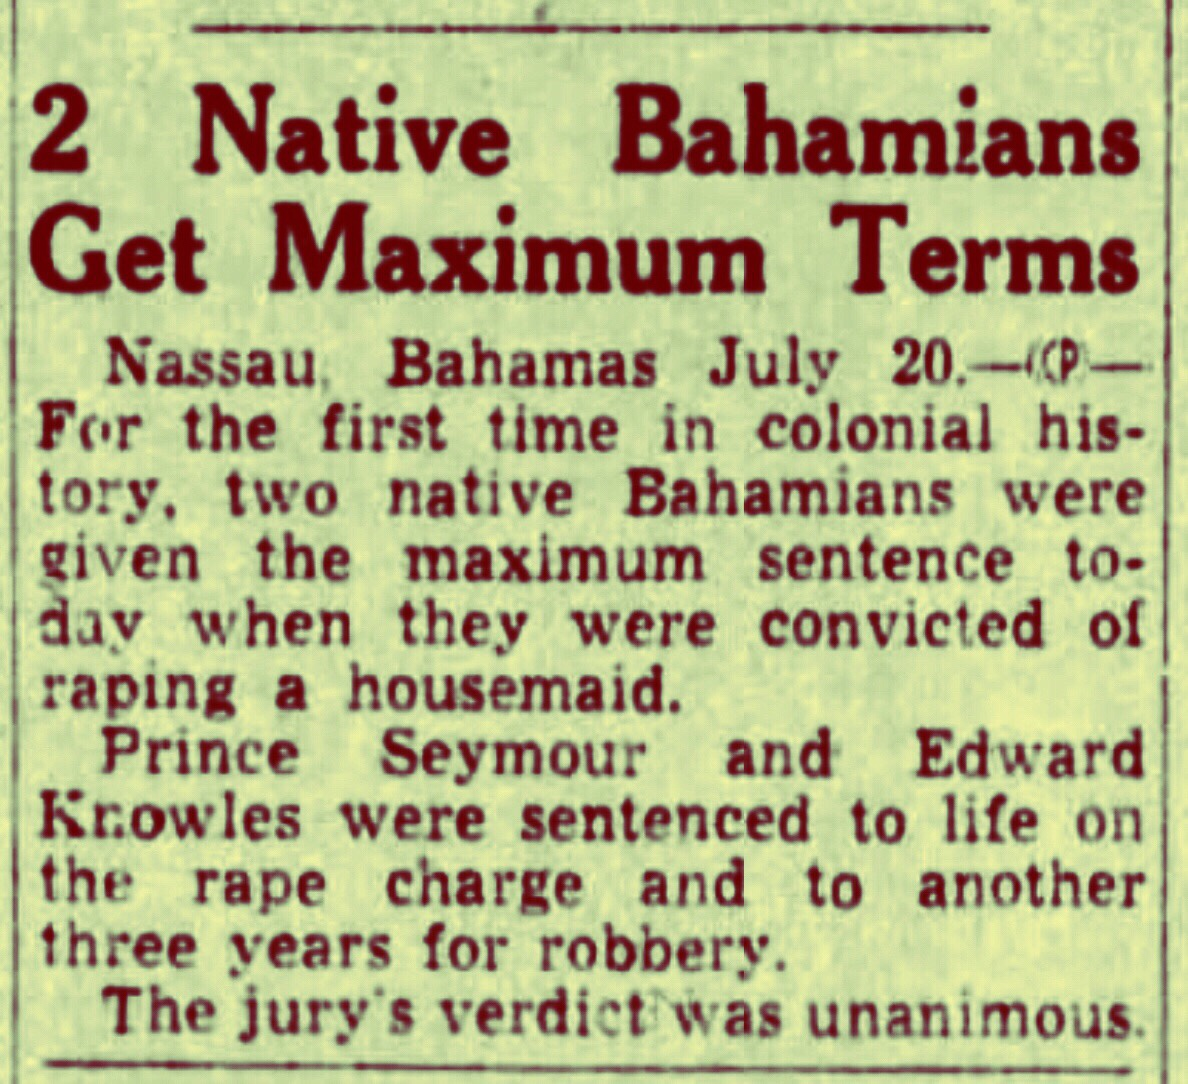 Life Sentence for Rape of White Woman plus Three Years for Robbery 1950